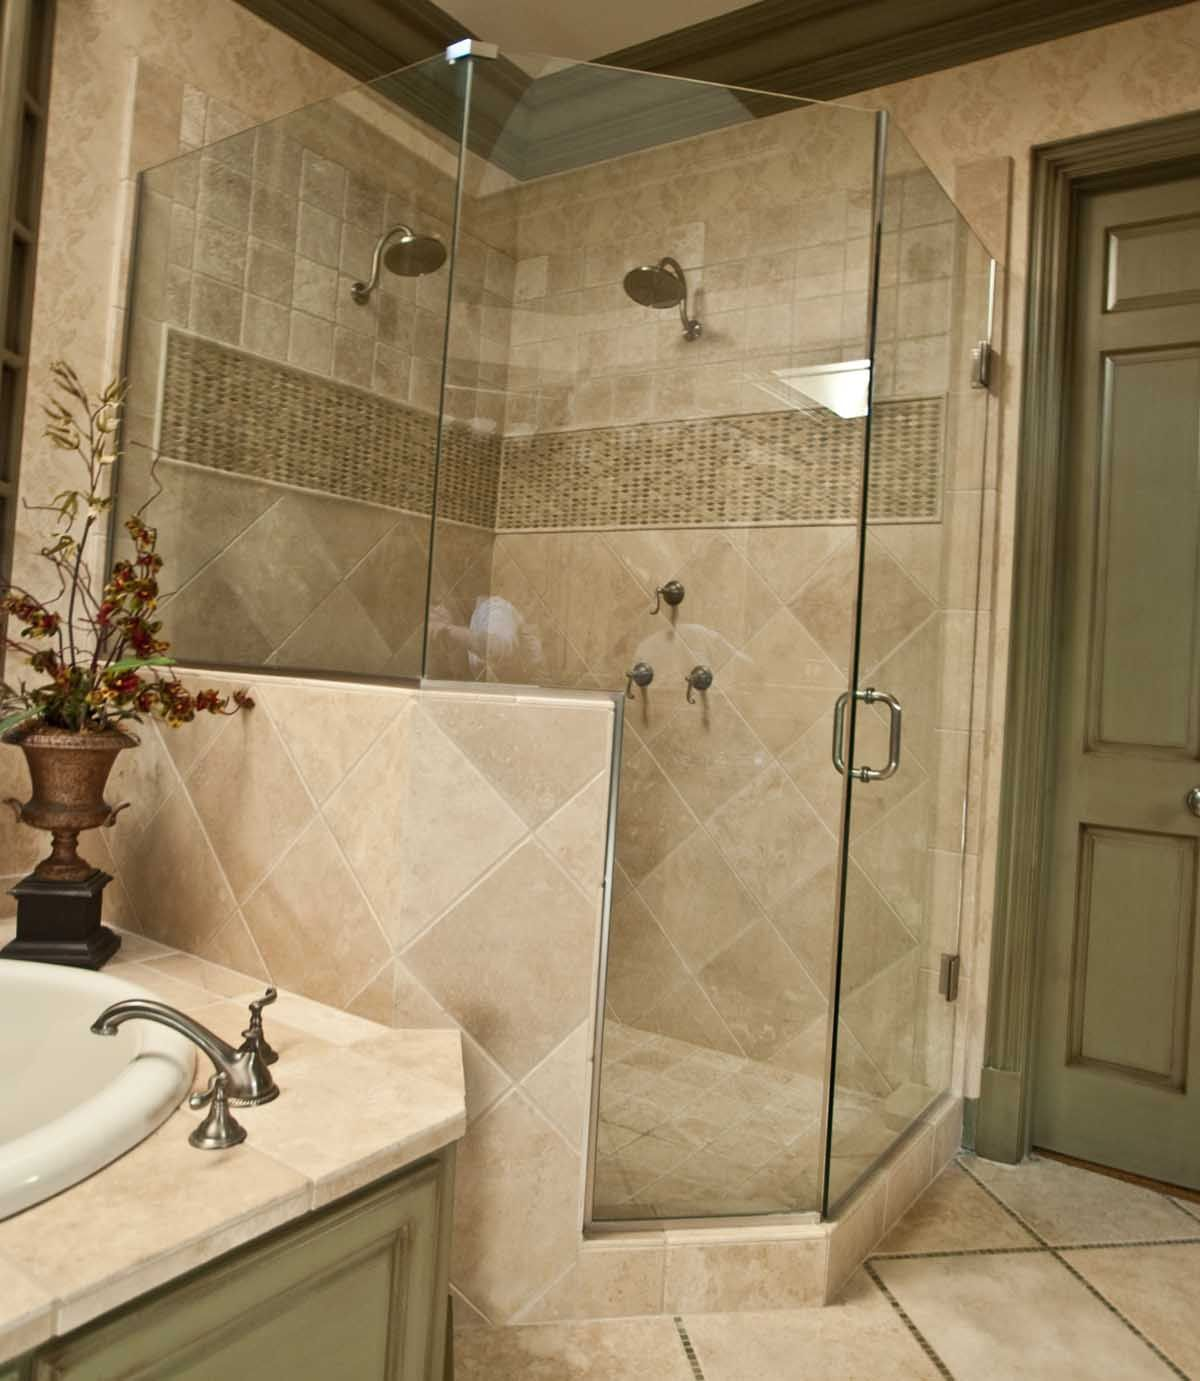 Explore Travertine Shower Shower Tiles and more